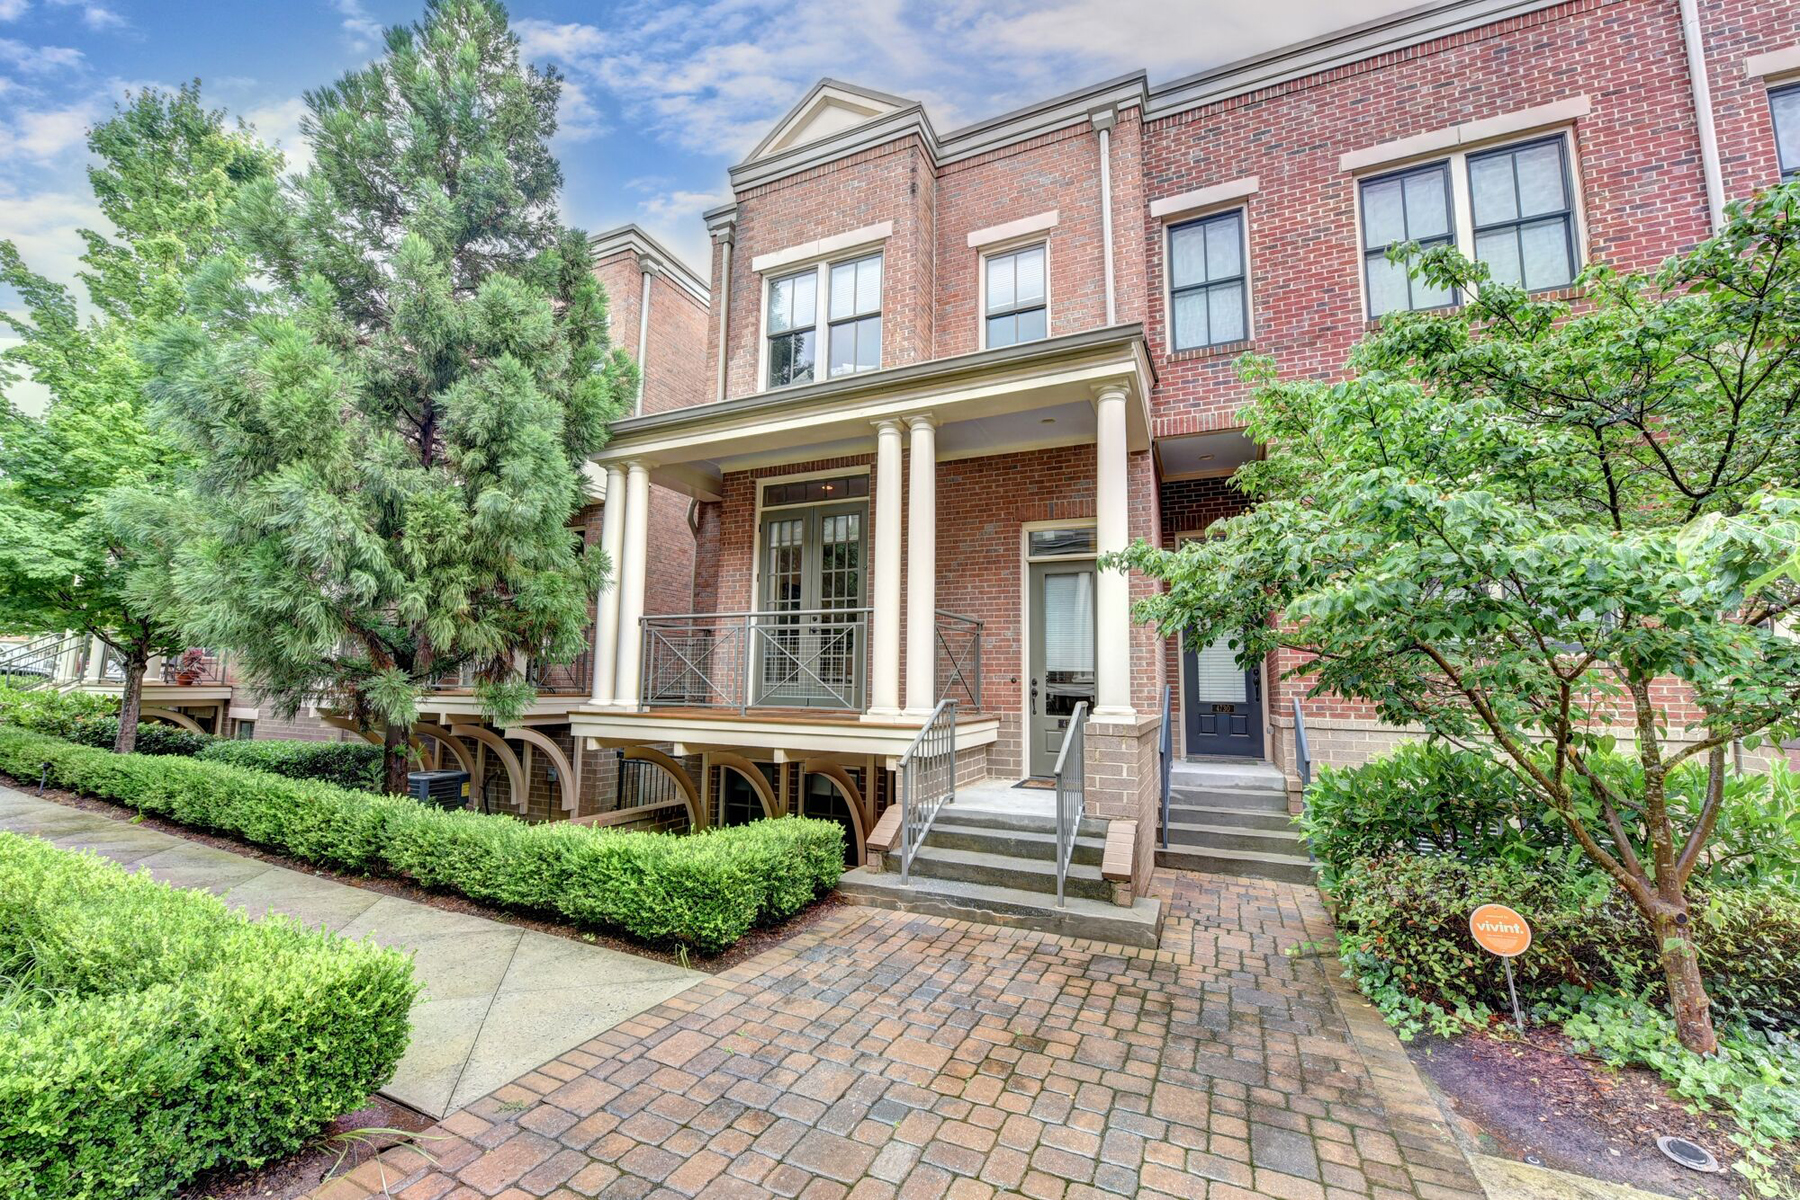 Gated Executive Three Bedroom, Three And A Half Bath Townhome In Best Location 4732 Cypress Commons Dunwoody, Georgien 30338 Förenta staterna